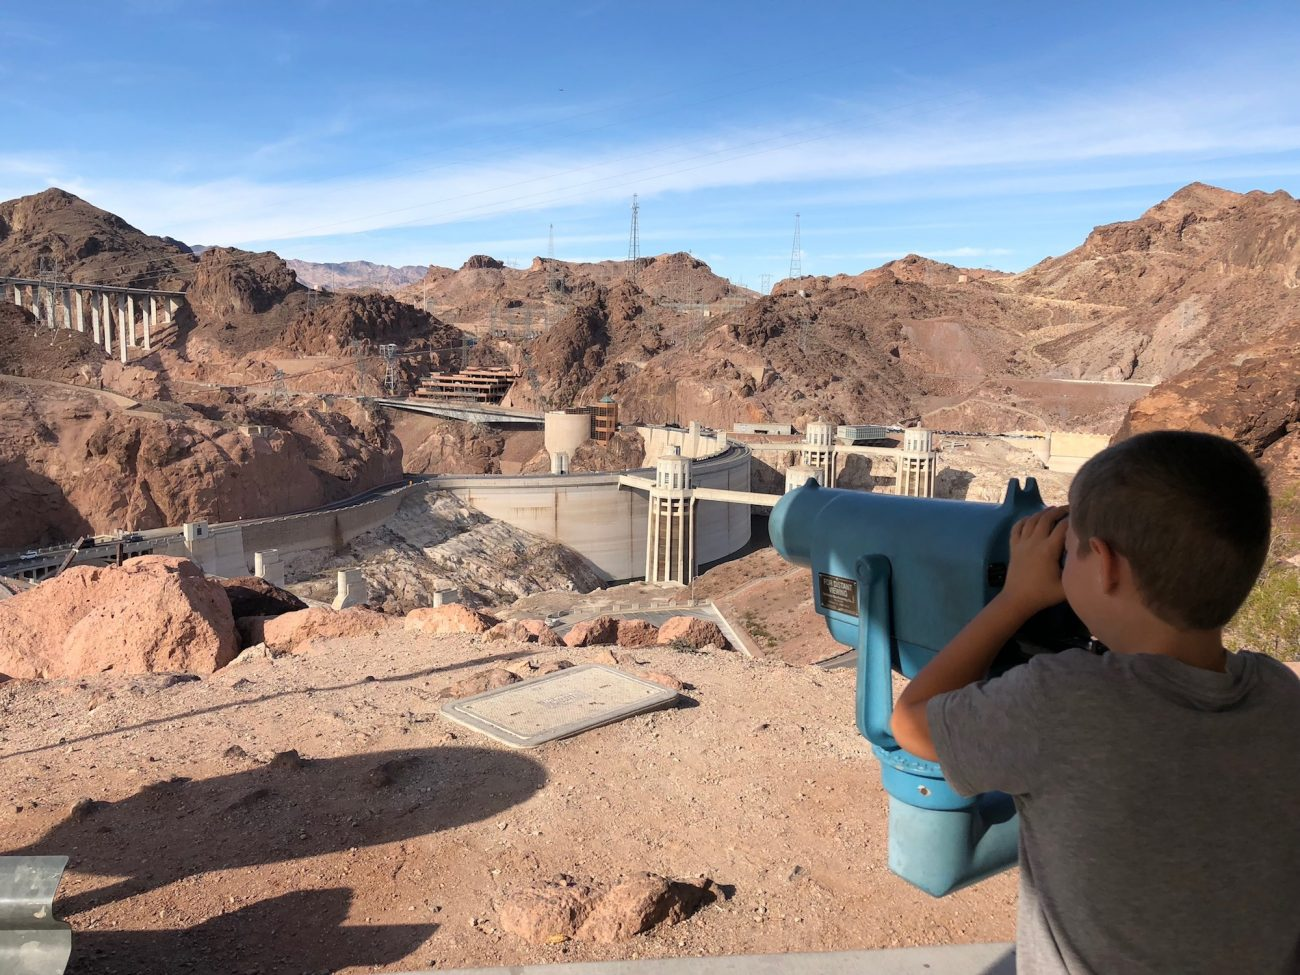 Jax at the hoover dam